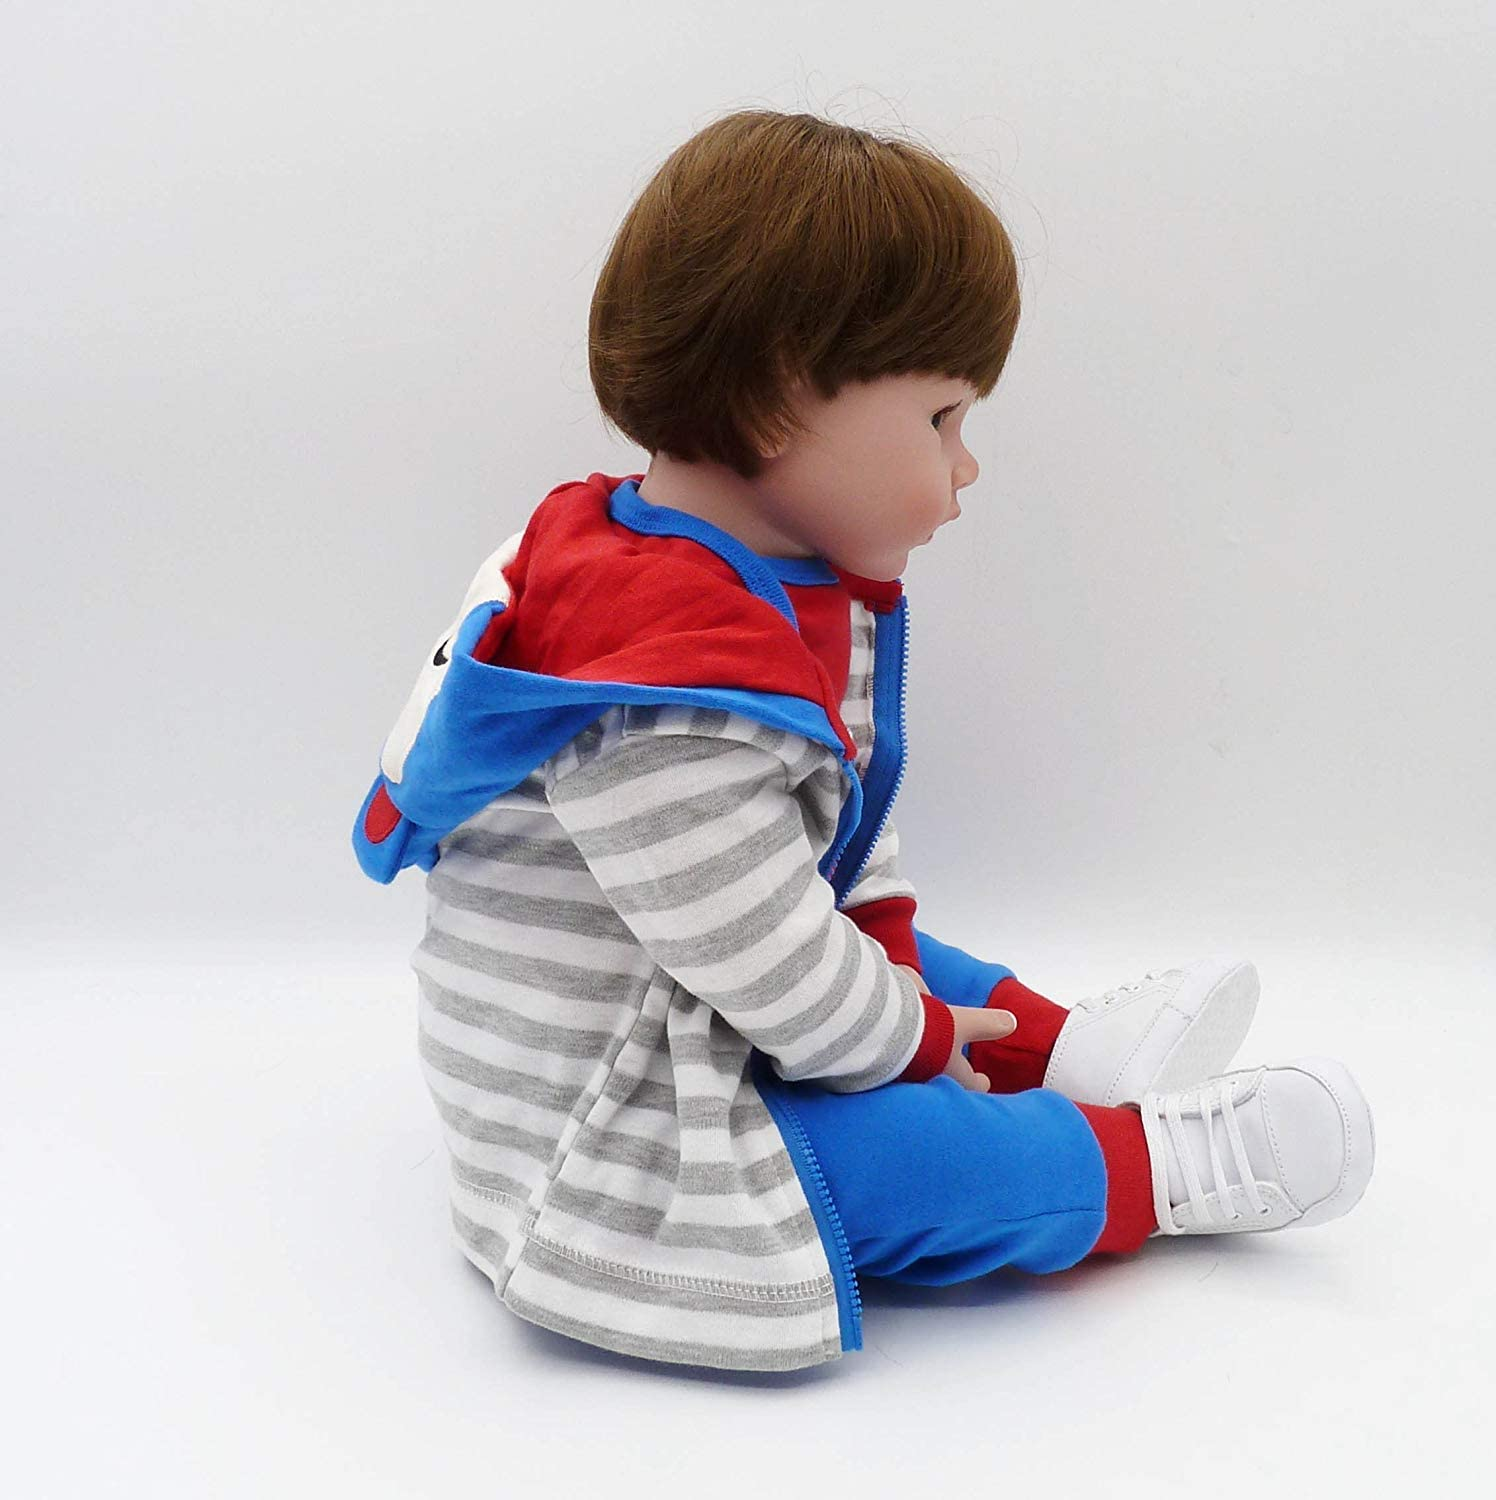 Reborn Toddler Boy 22inch Vinyl Silicone Baby Doll Brown Hair Blue Outfit 55cm Toy Gifts Set